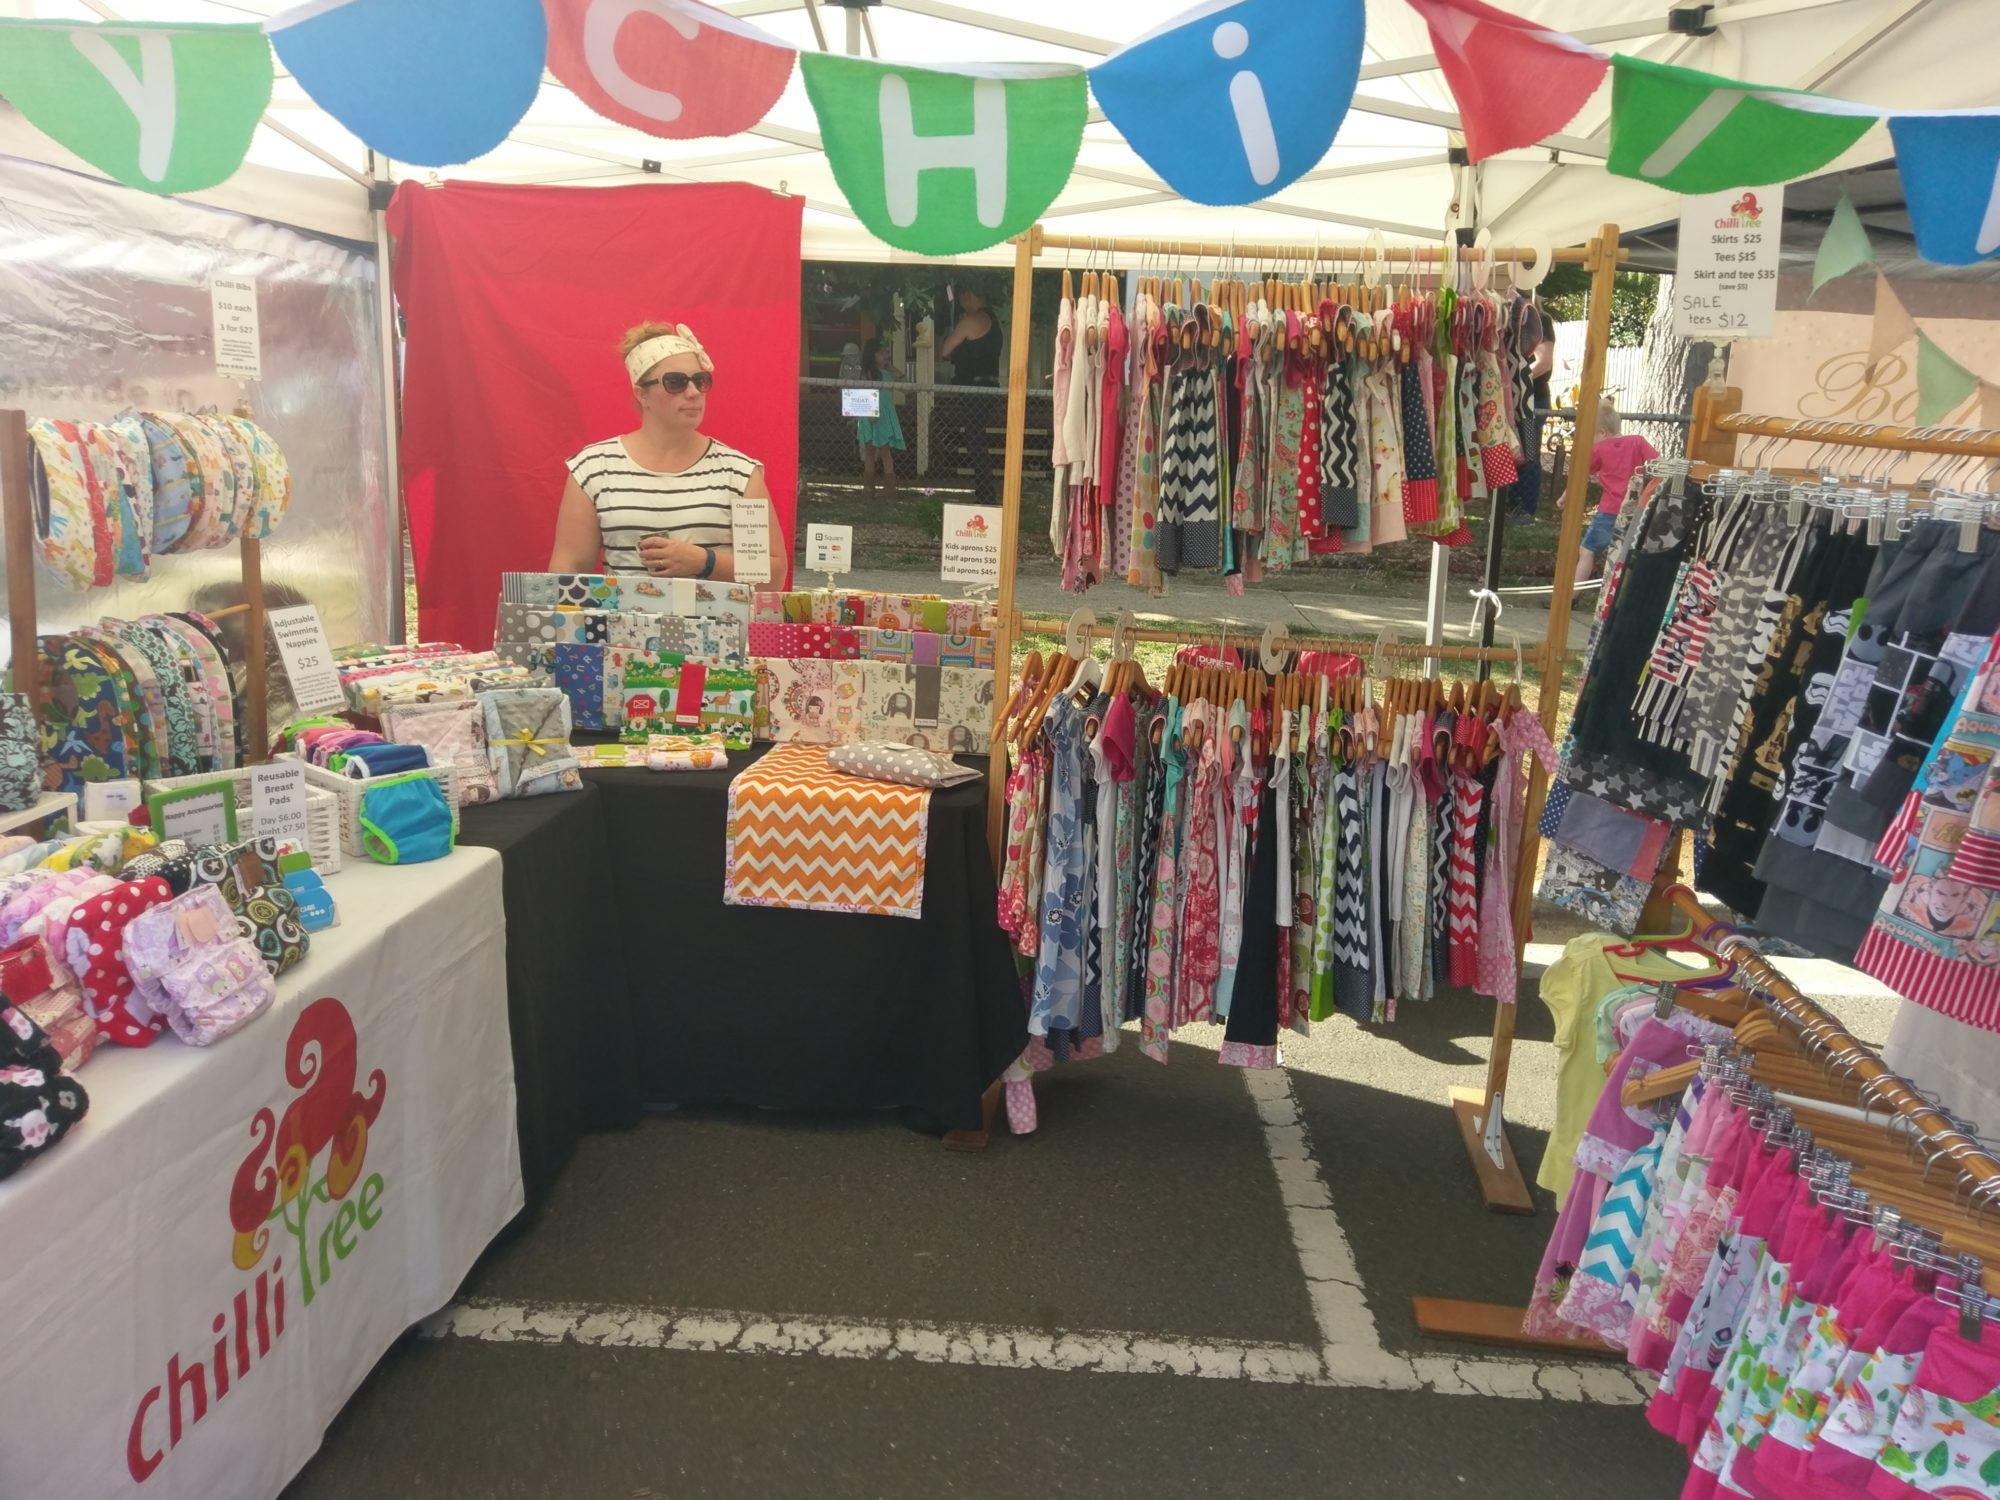 Market stall at the festival